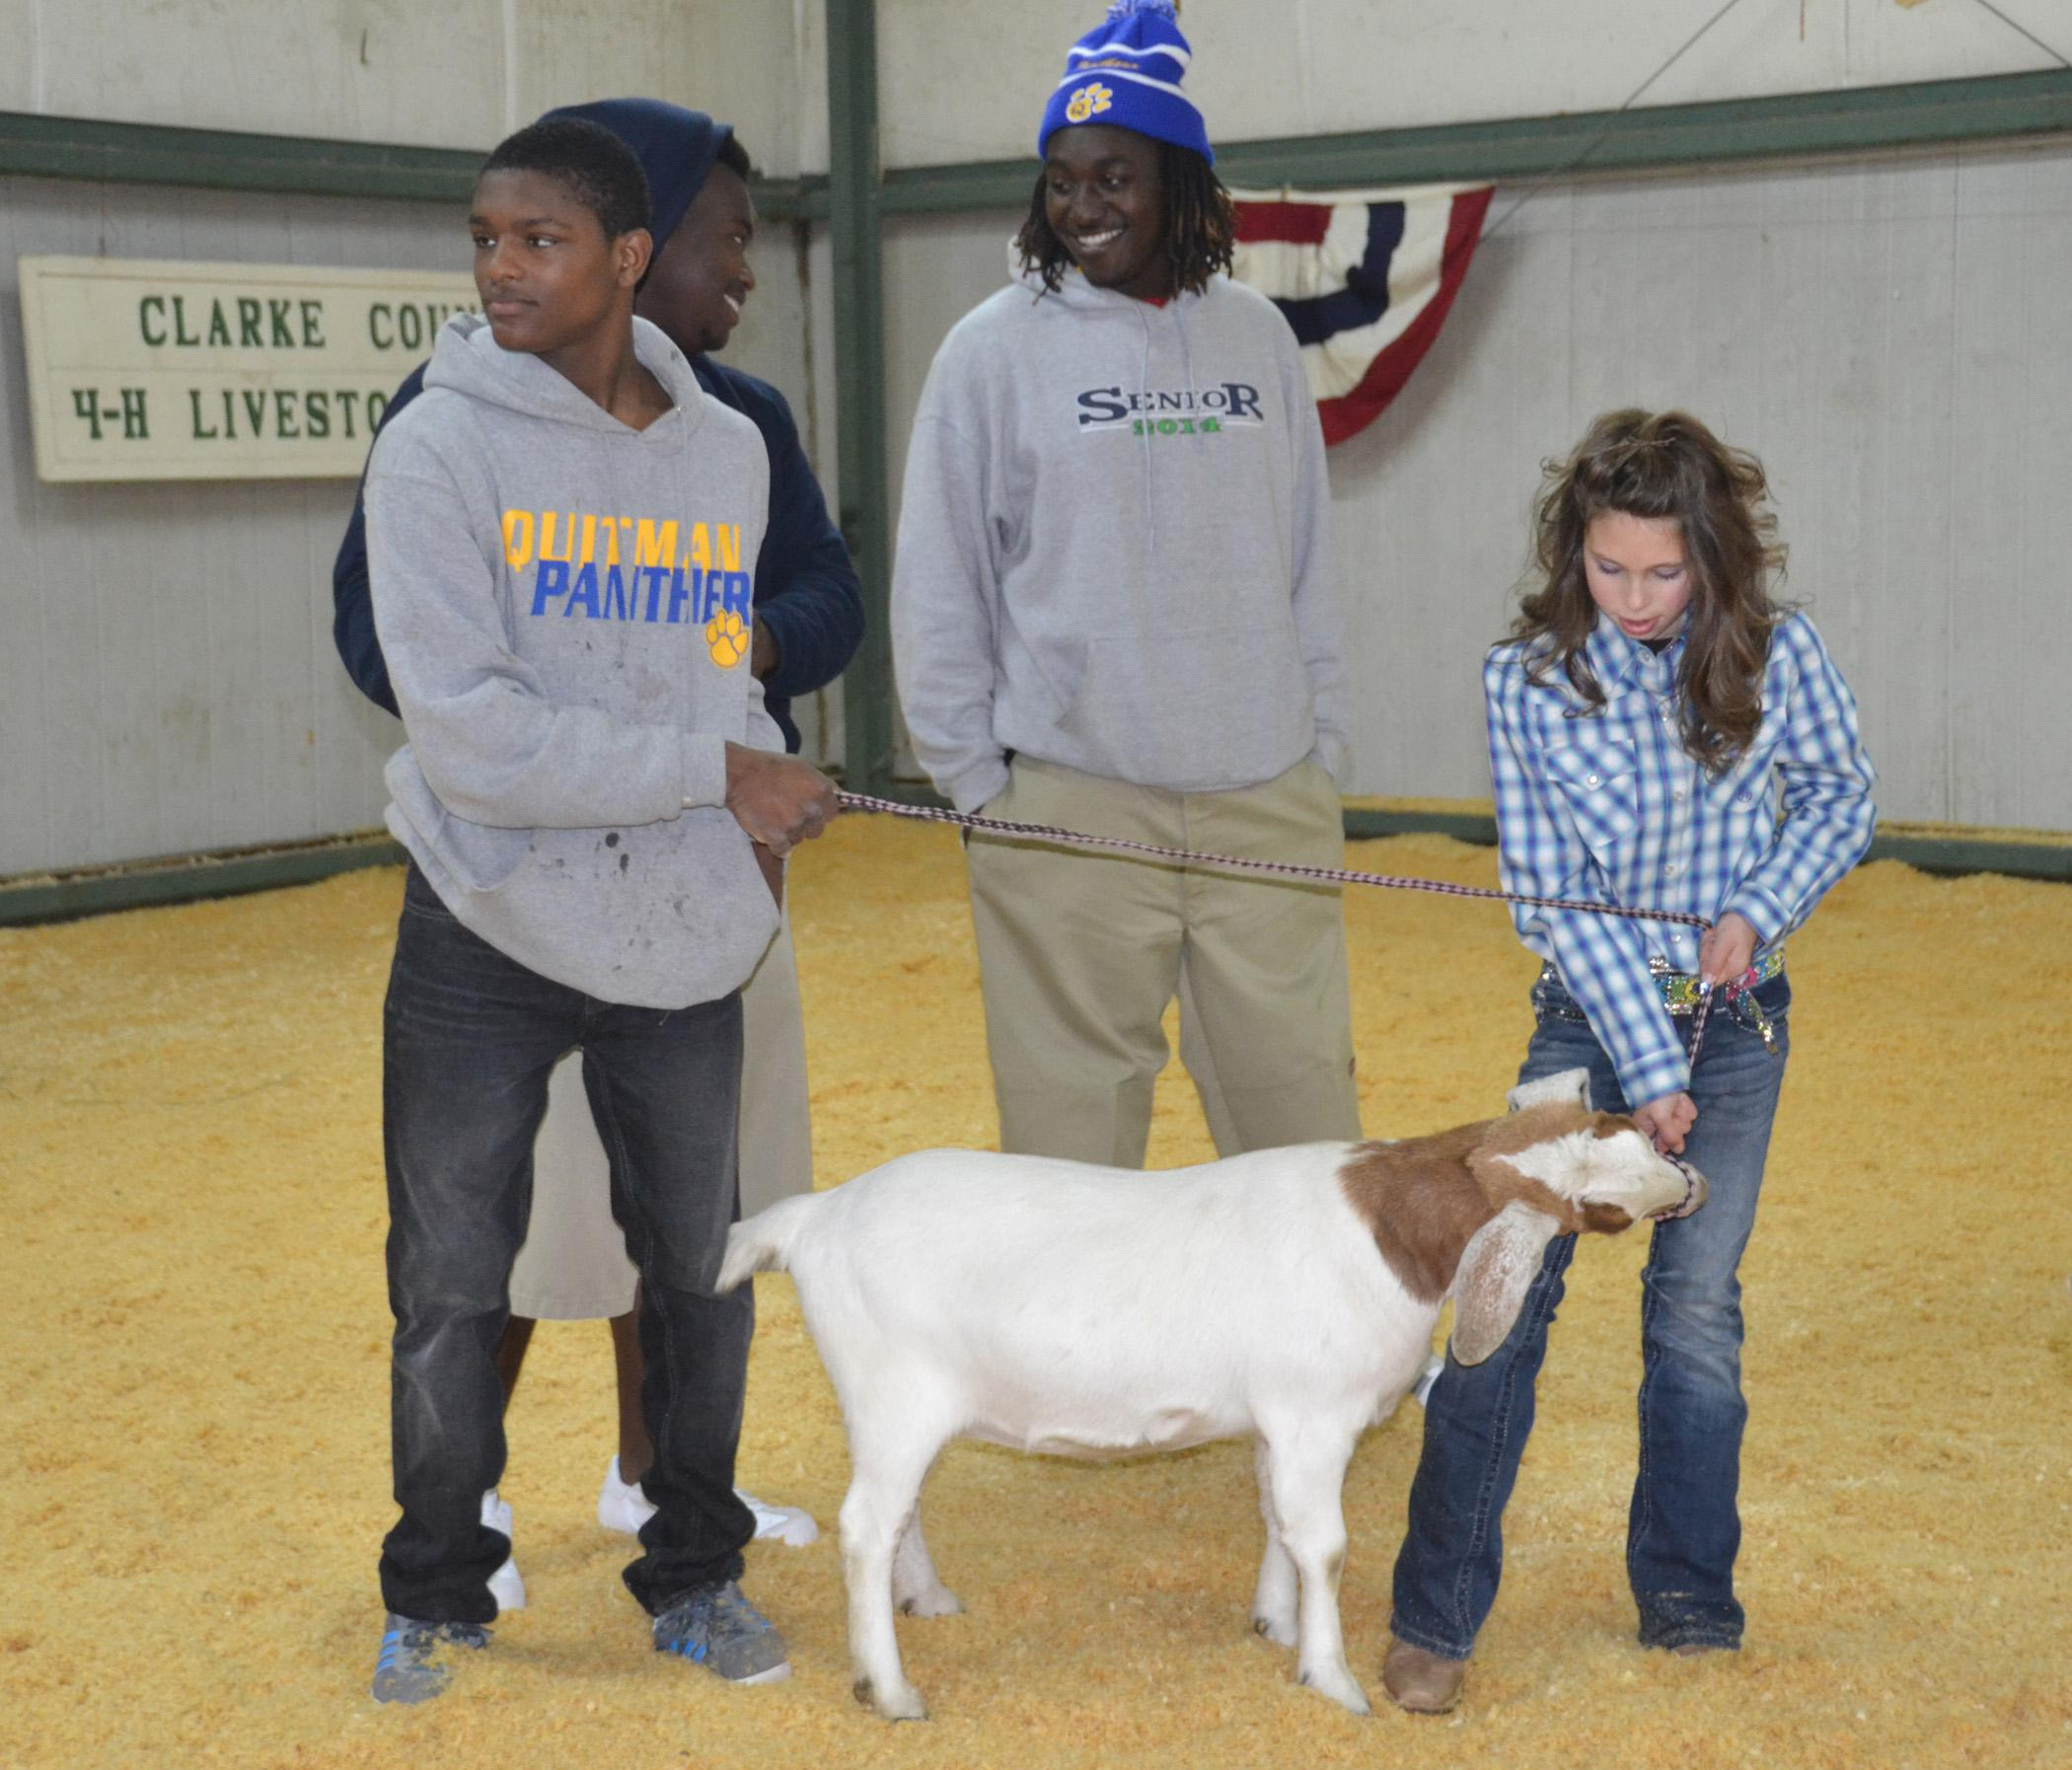 Christian Thornton, left, shows a goat with support from Lafredrick Leggett, Dykarius Arrington and Clarke County 4-H Livestock Club member Jesse Miller during the Clarke County 4-H Special Needs Livestock Show Jan. 17 in Quitman. (Photo by MSU Ag Communications/Susan Collins-Smith)